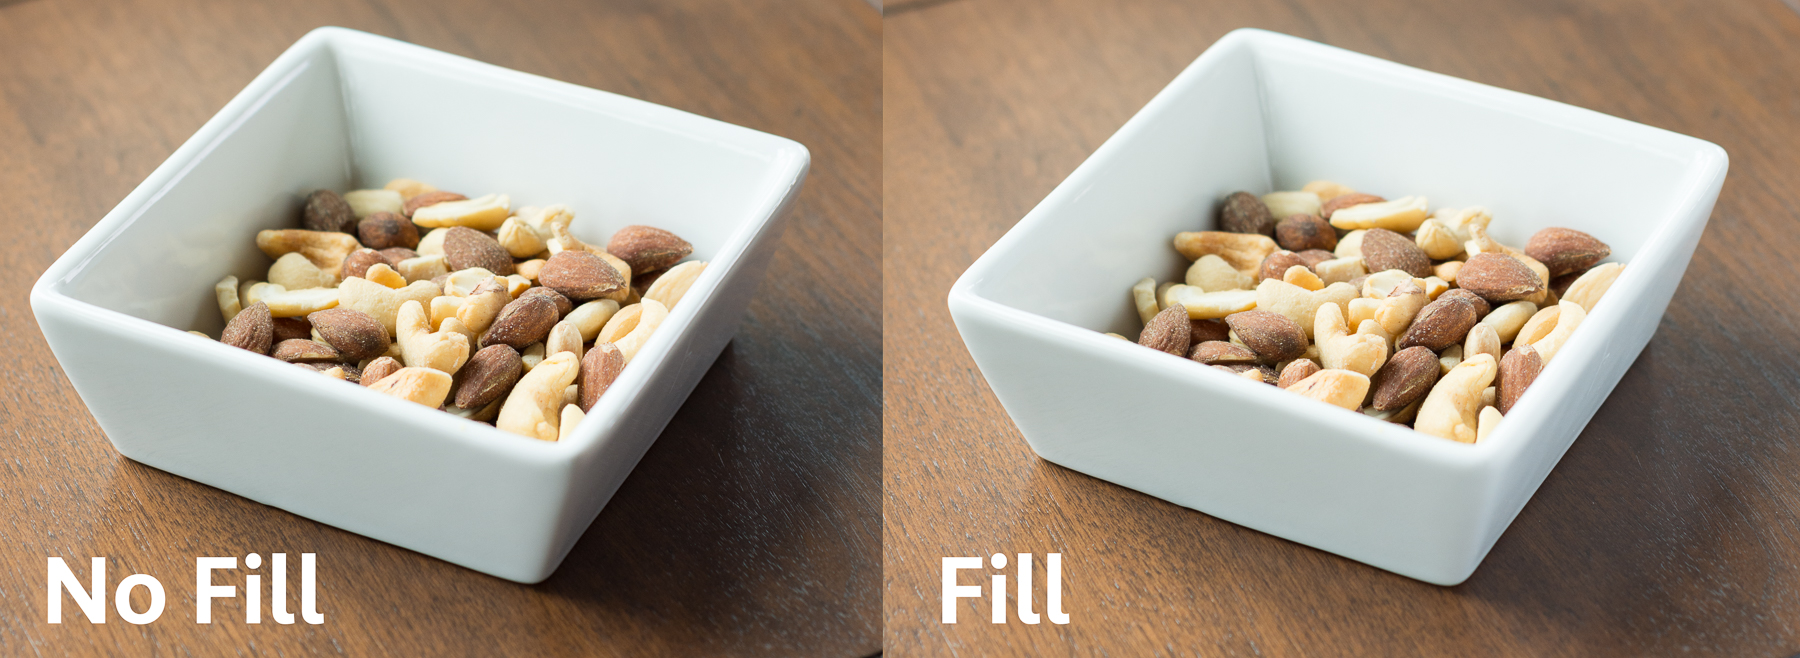 The effect of adding a white card, or 'fill' to fill the shadows. High contrast in the first photo can be a bit distracting. In the second photo, the right-hand side of the serving dish is lighter, and its shadow is lighter. As well, the left inner side of the dish is more evenly lit.